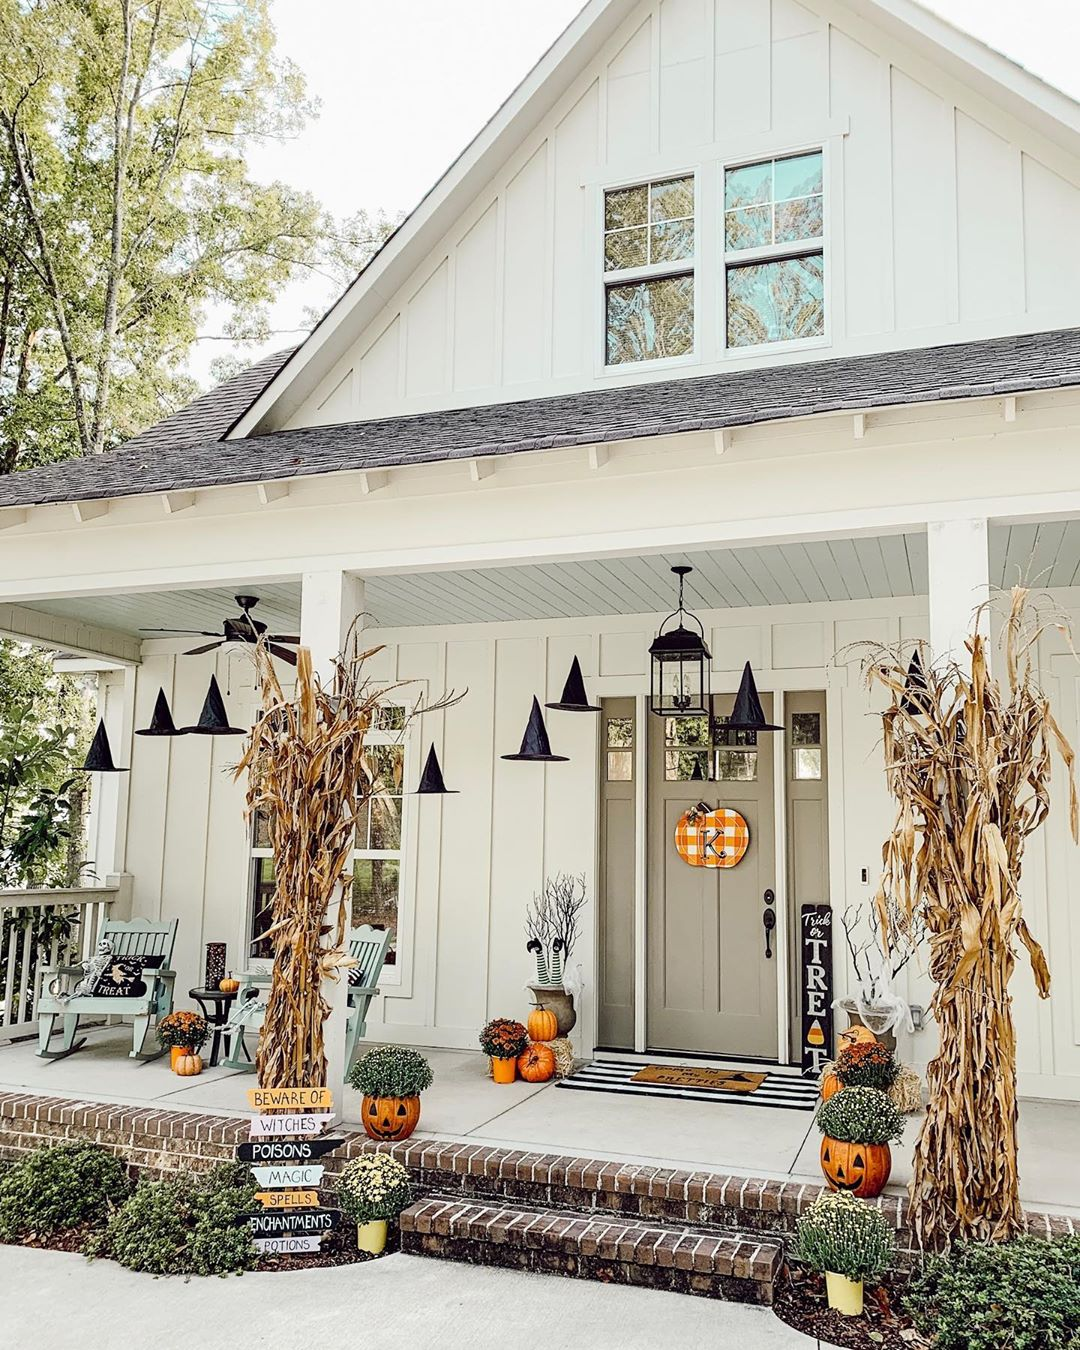 1569404385 80 front porch decor ideas to welcome fall with - Front Porch Decor Ideas To Welcome Fall With